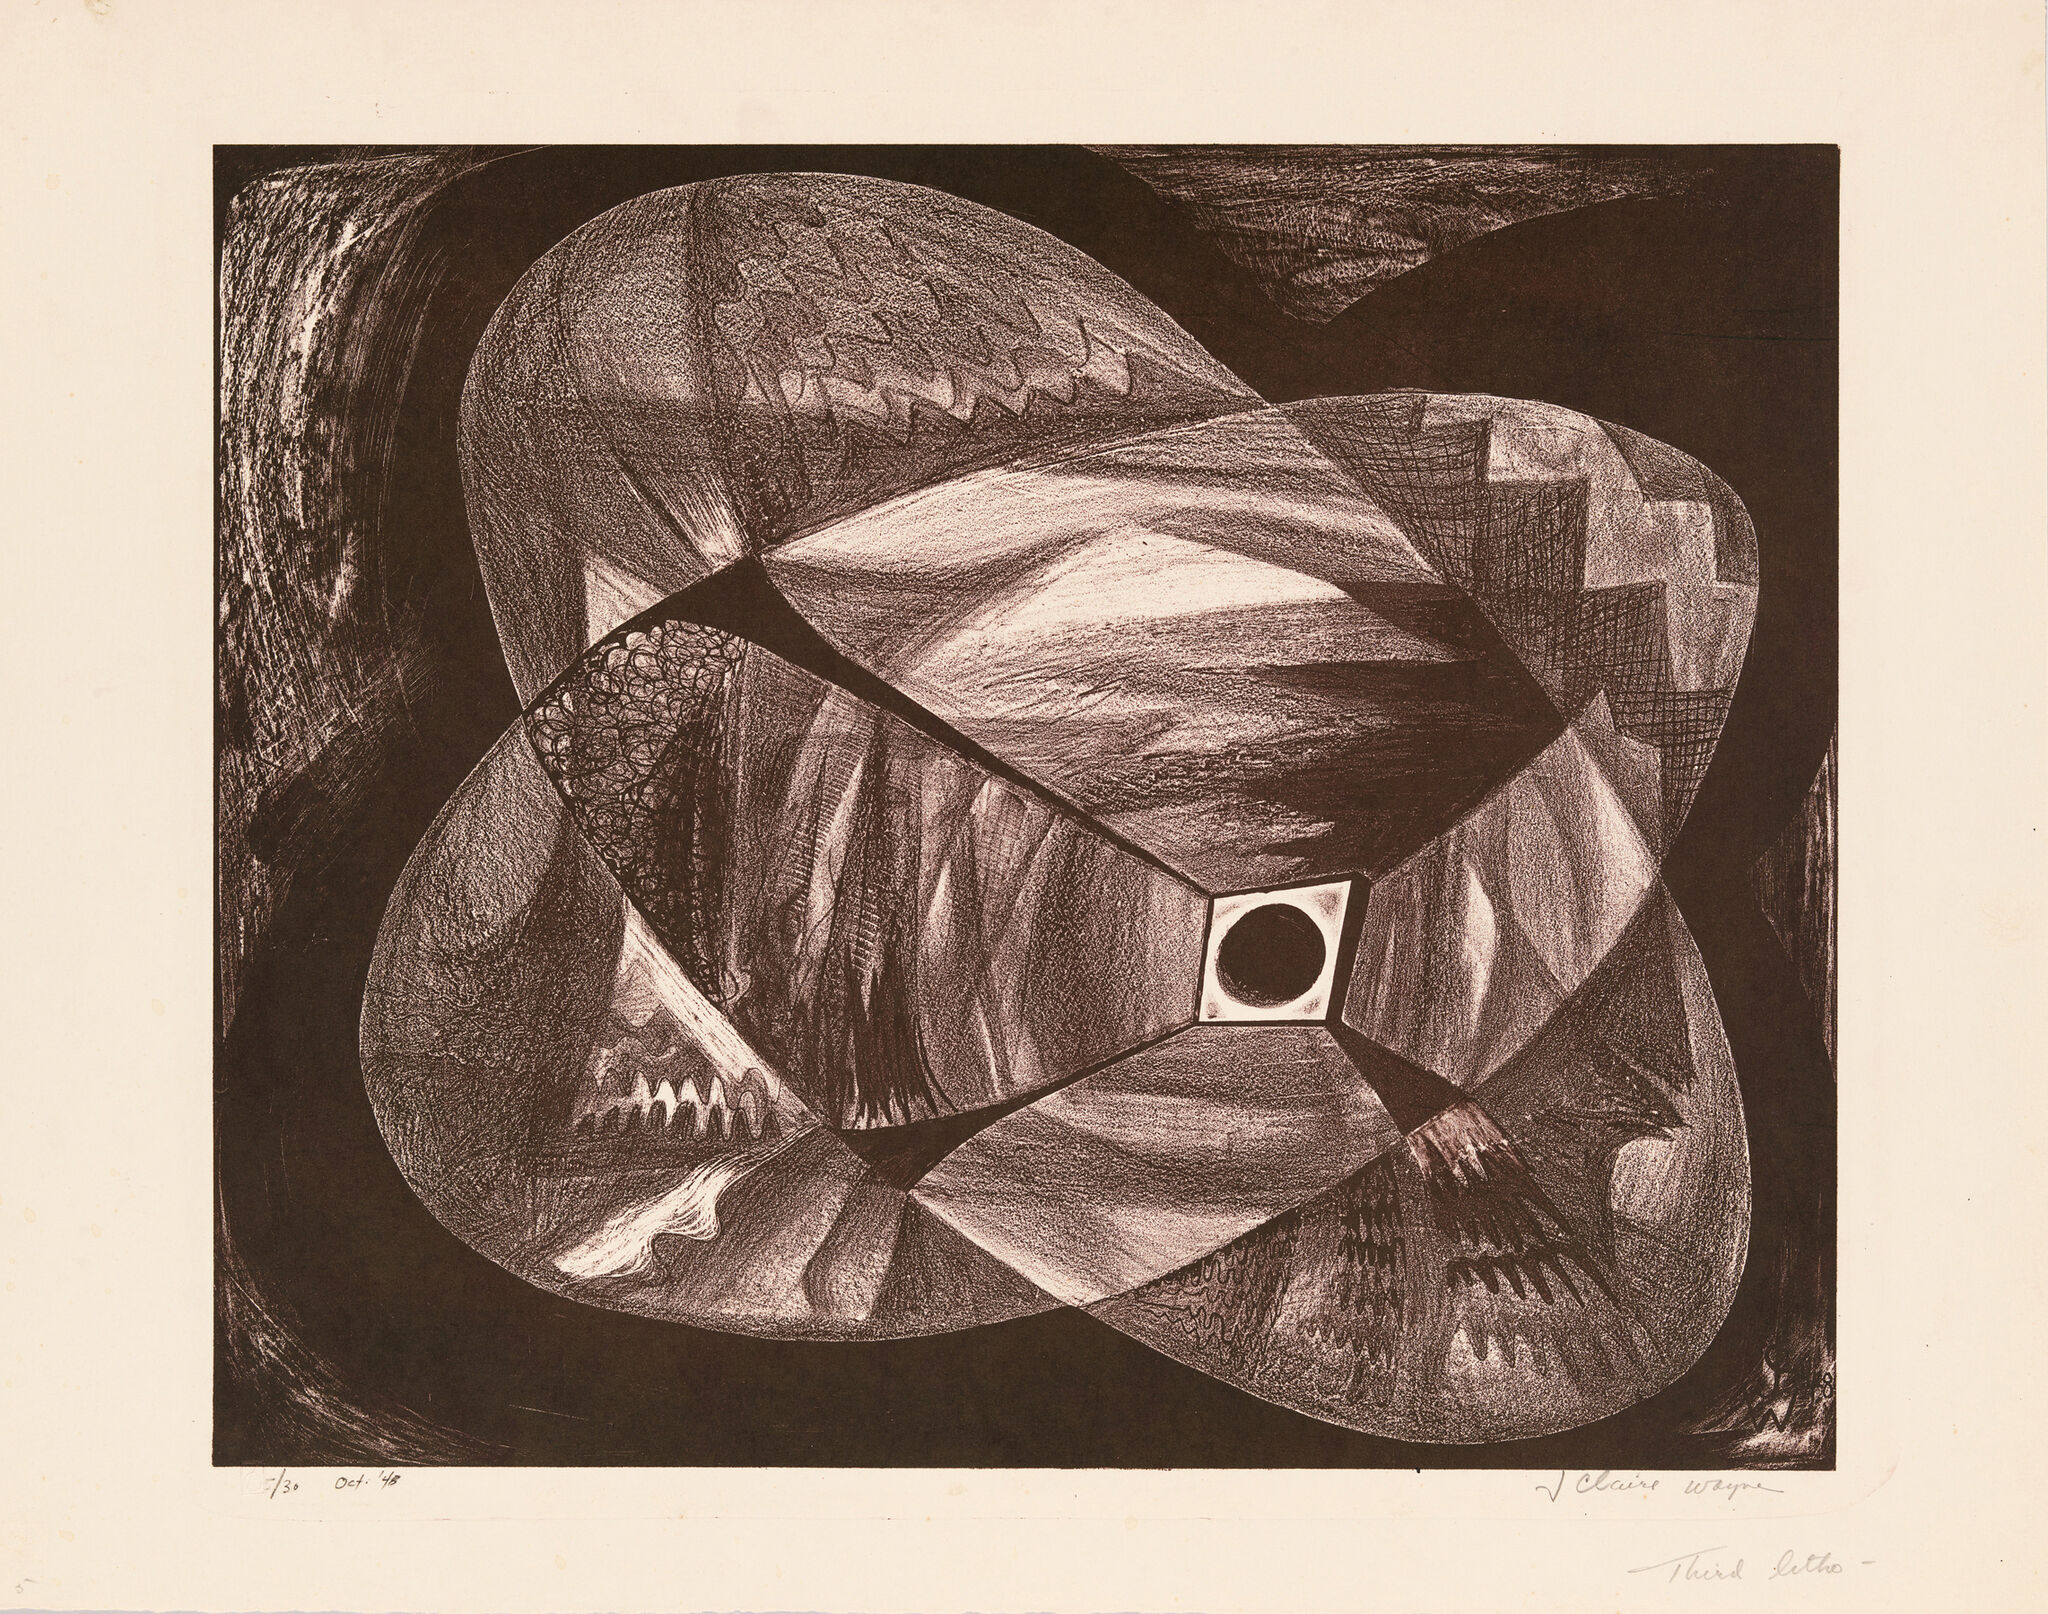 Black circle surrounded by shadowy, fragmented forms of varying shading and patterns.